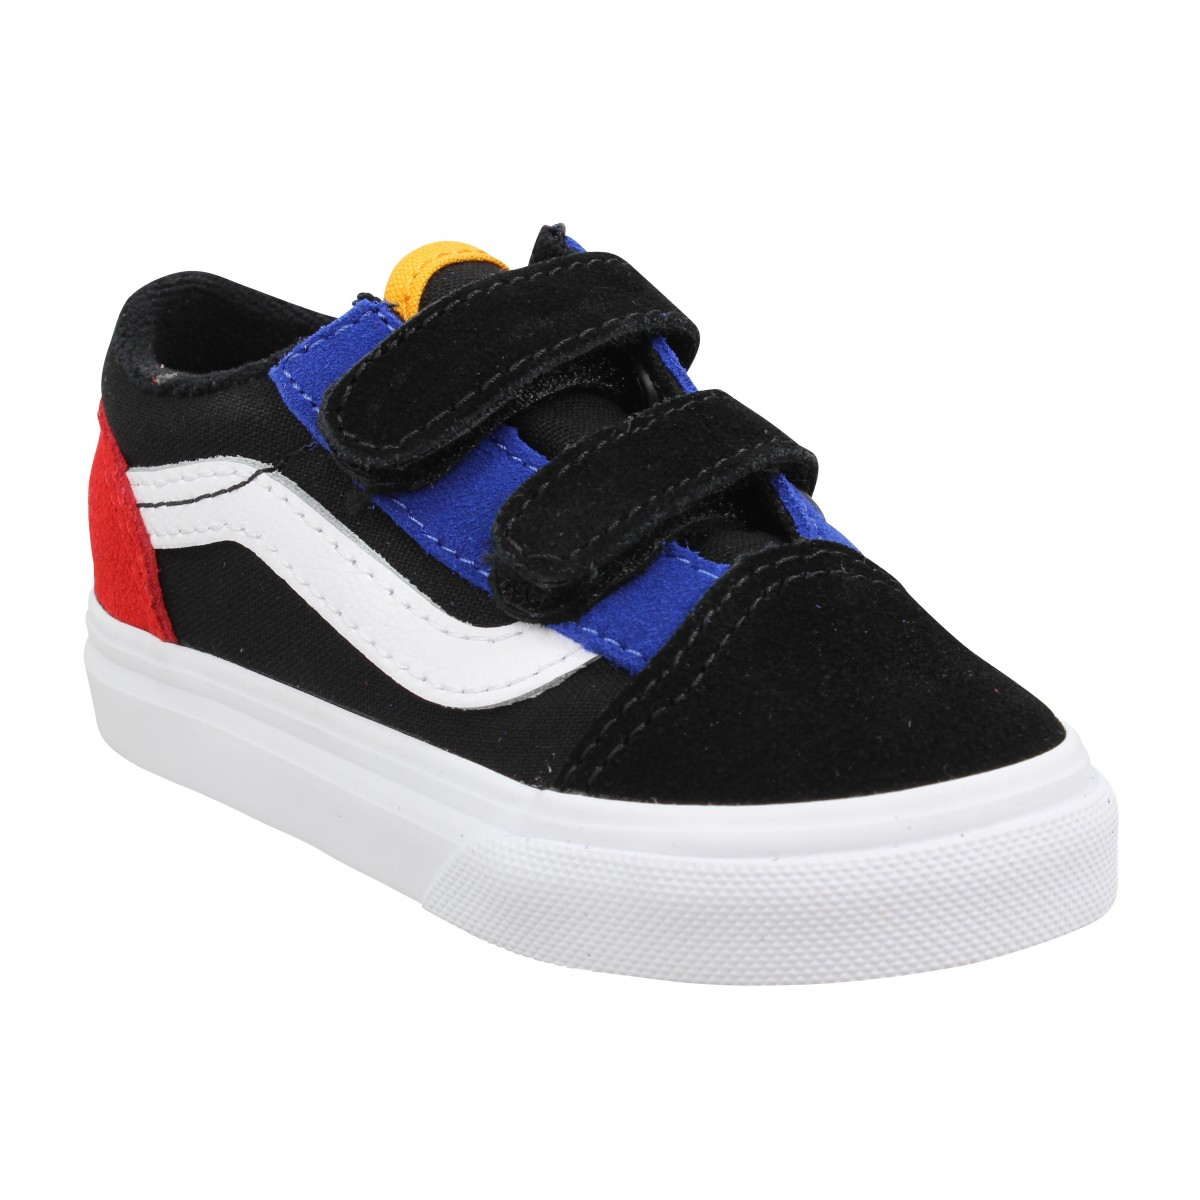 Baskets VANS Old Skool V velours toile Enfant Noir Surf